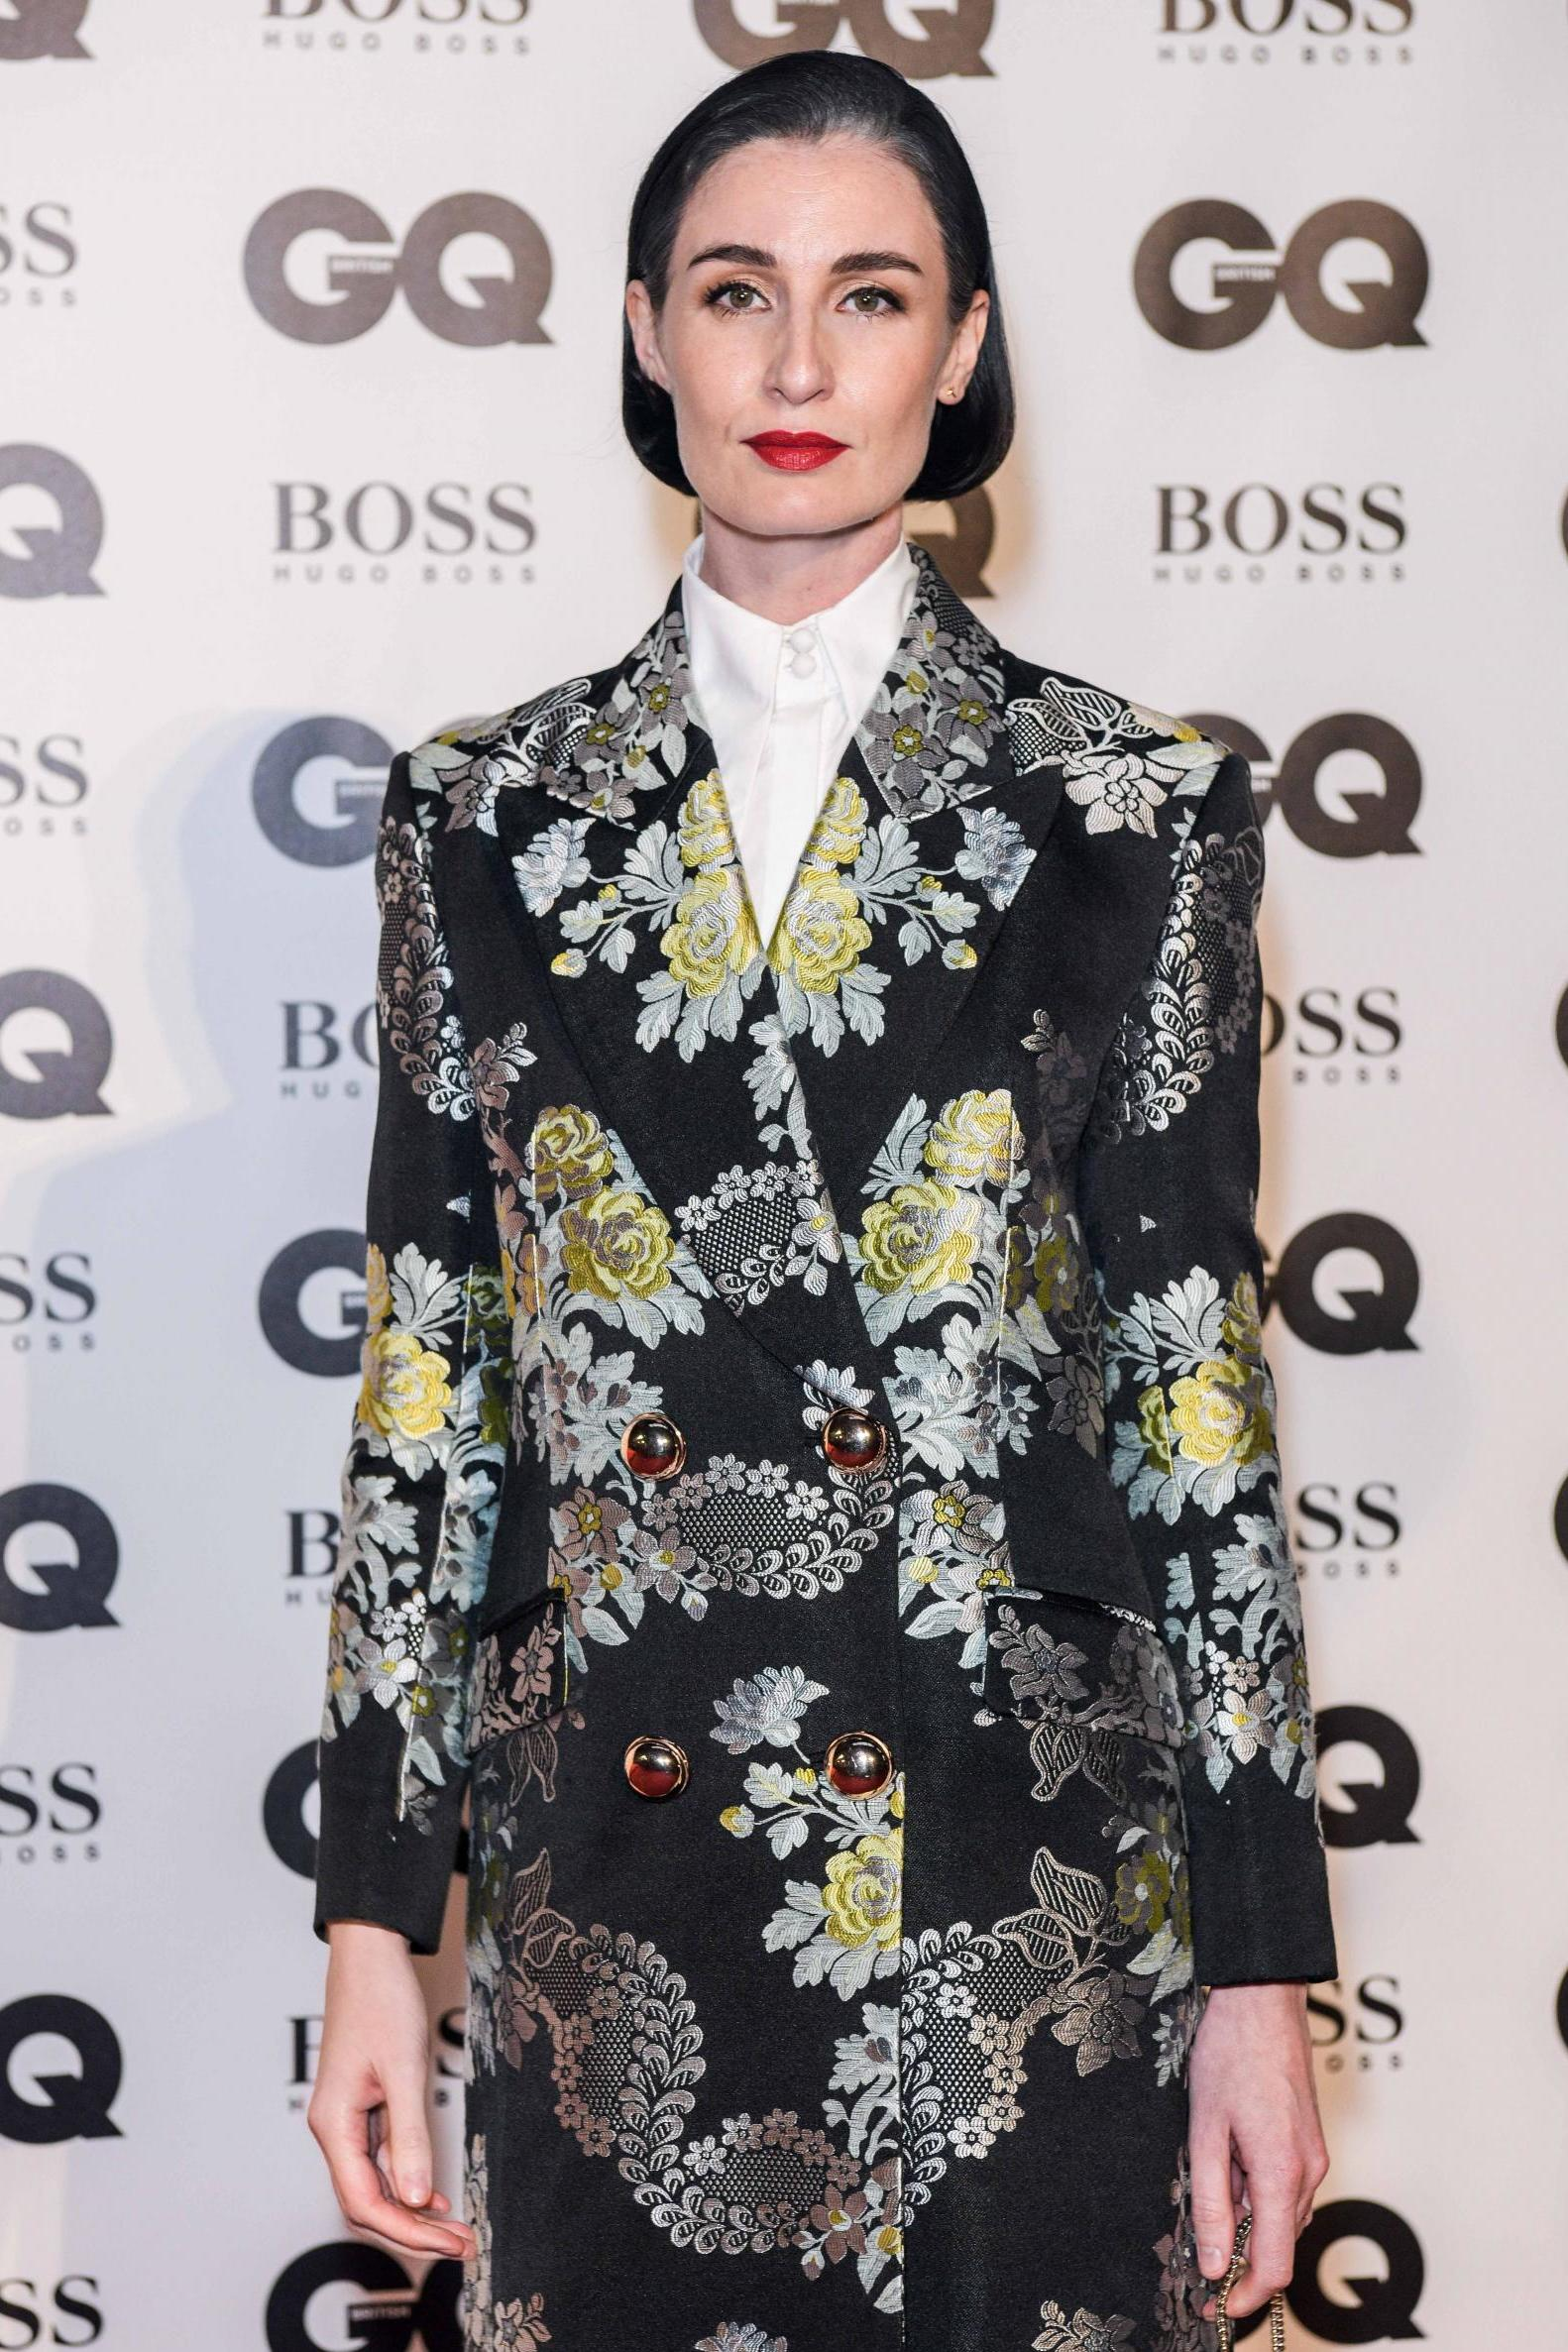 GQ Awards: The best-dressed guests on the red carpet, from